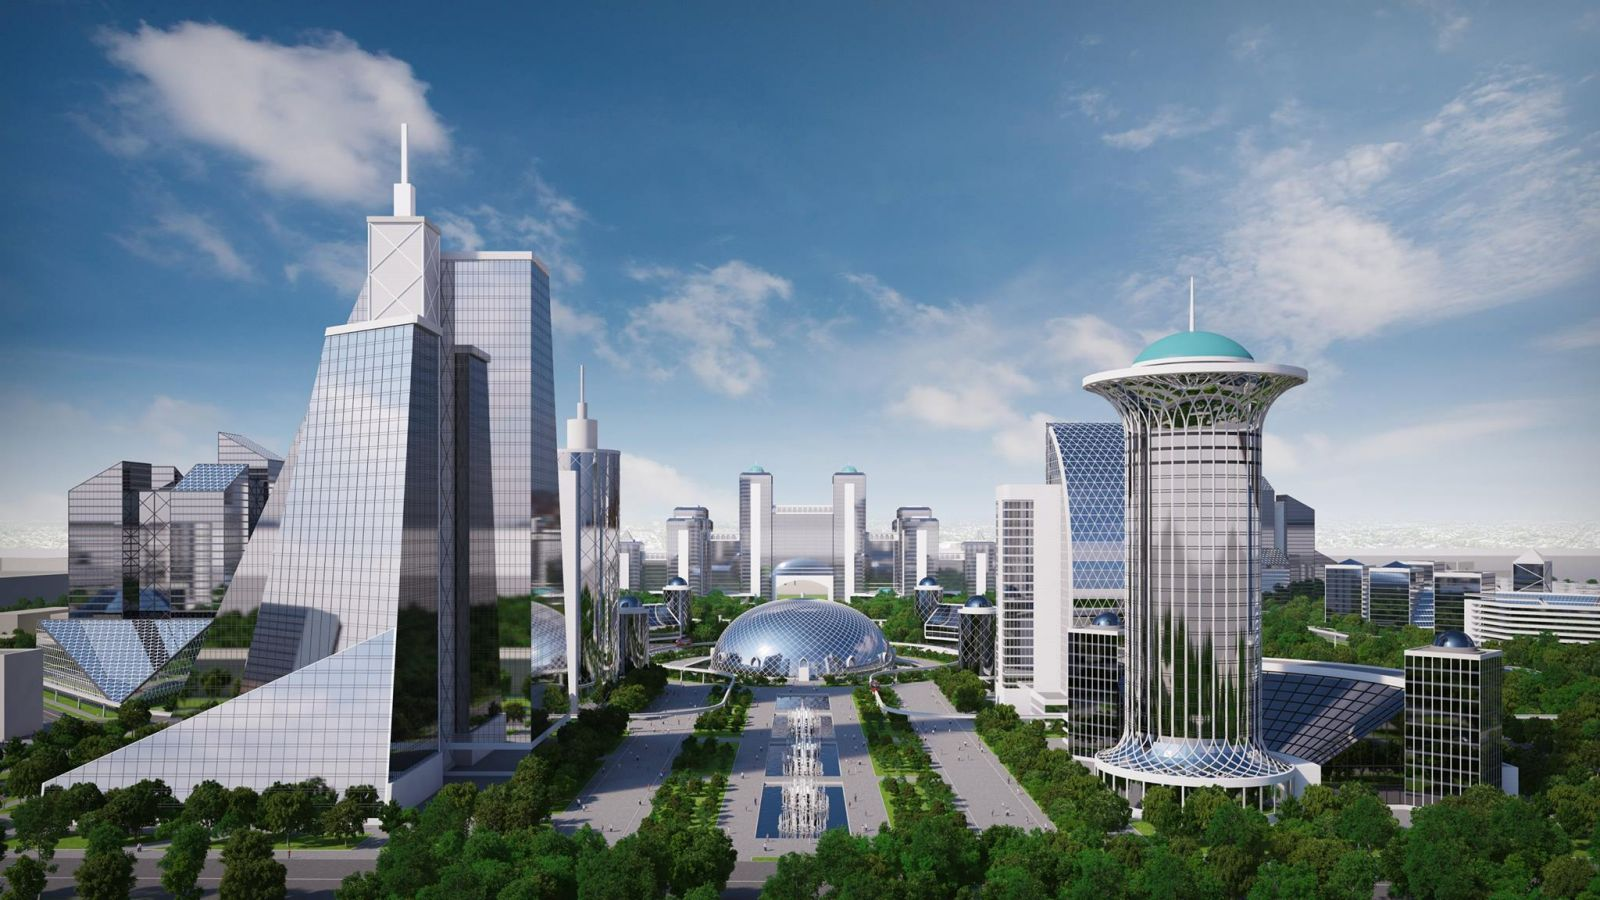 Source business center tashkent city to be constructed in uzbek capital uzdaily com july 10 2017 https www uzdaily com articles id 40052 htm